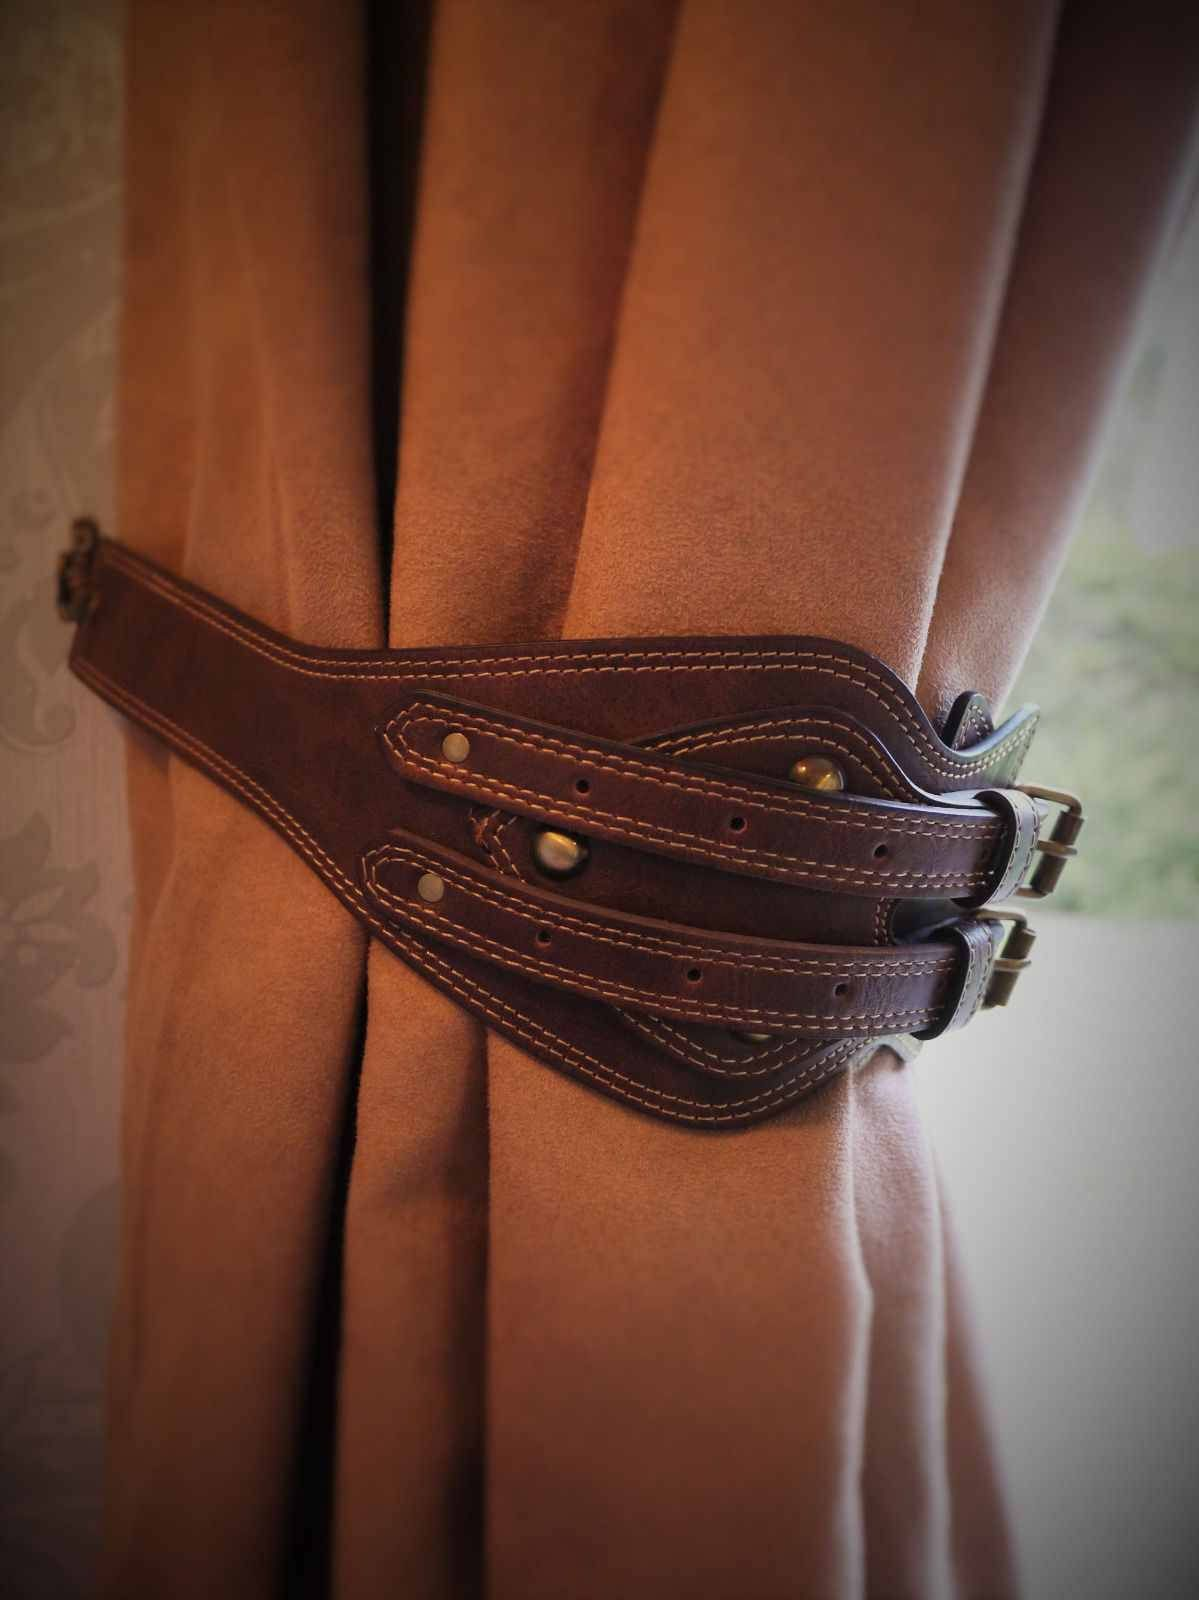 Hand Crafted Vintage Leather Belt Curtain Tie Backs Hold Vintage Leather Belts Belt Curtain Tie Backs